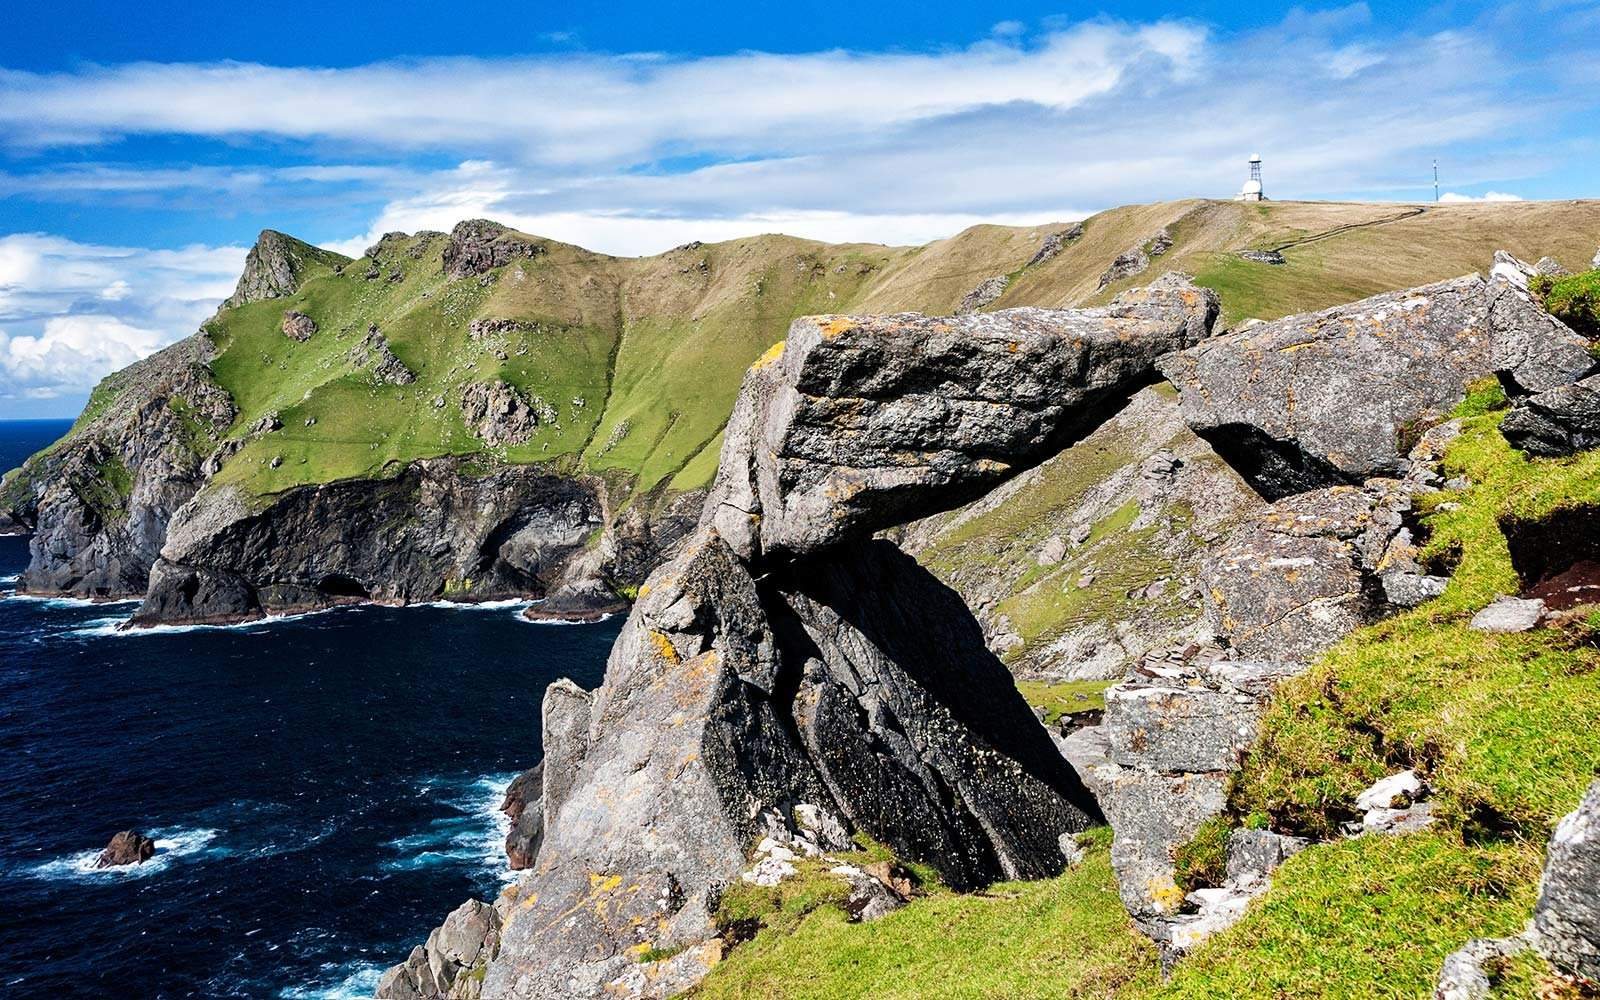 A view of the Mistress Stone on the island of St. Kilda Scotland